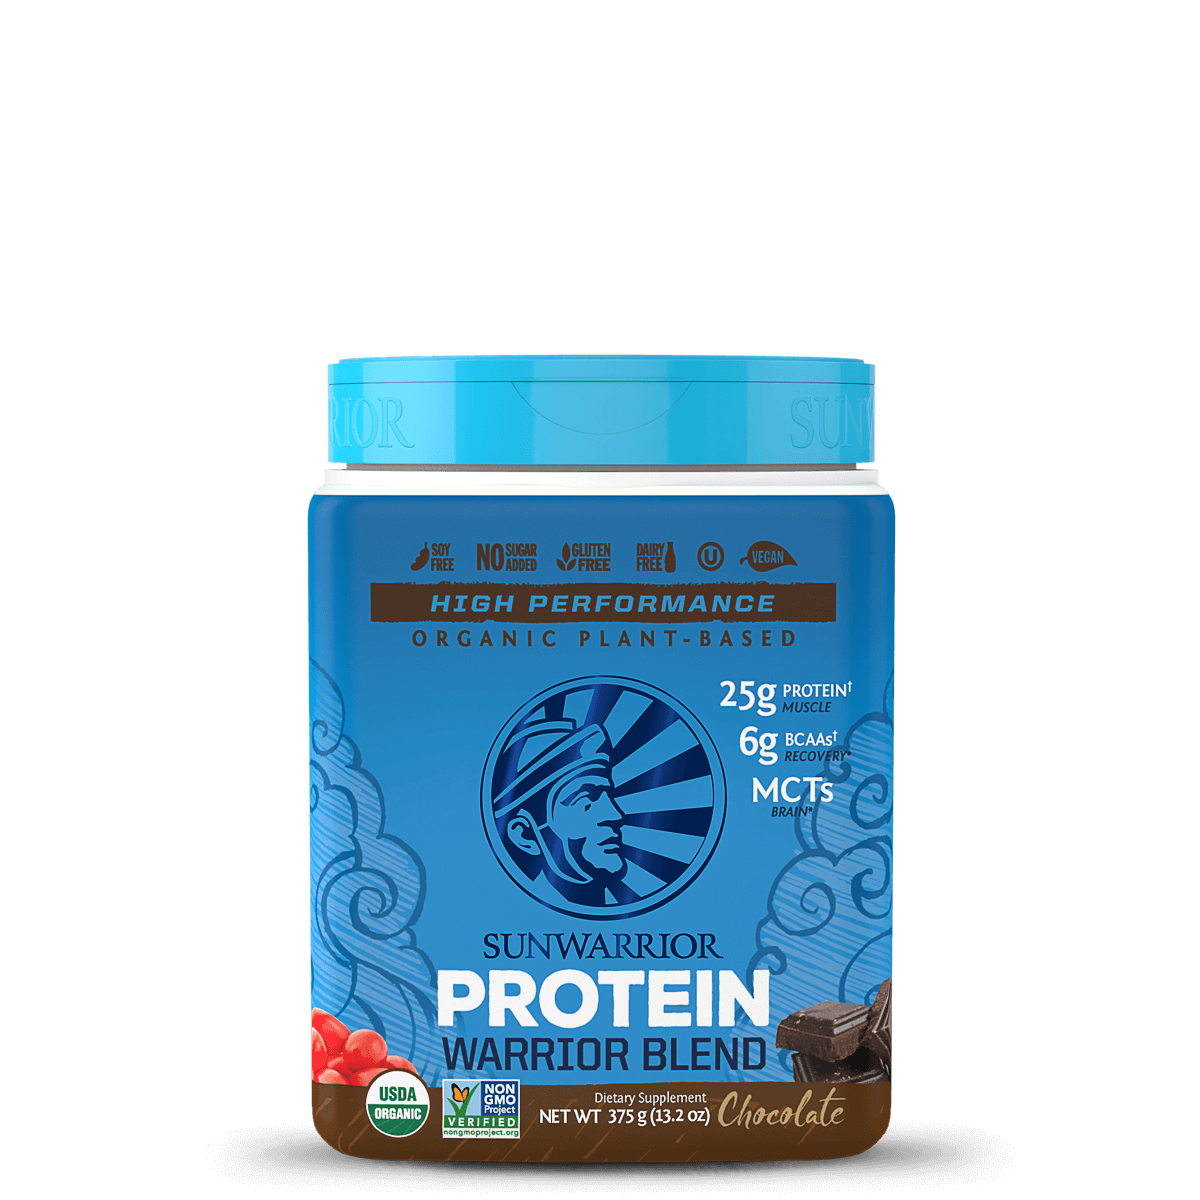 Supplements & Vitamins,Gluten Free,Dairy Free,Vegan,Mandy's Grocery List - Sun Warrior - Warrior Blend Protein (chocolate), 375g